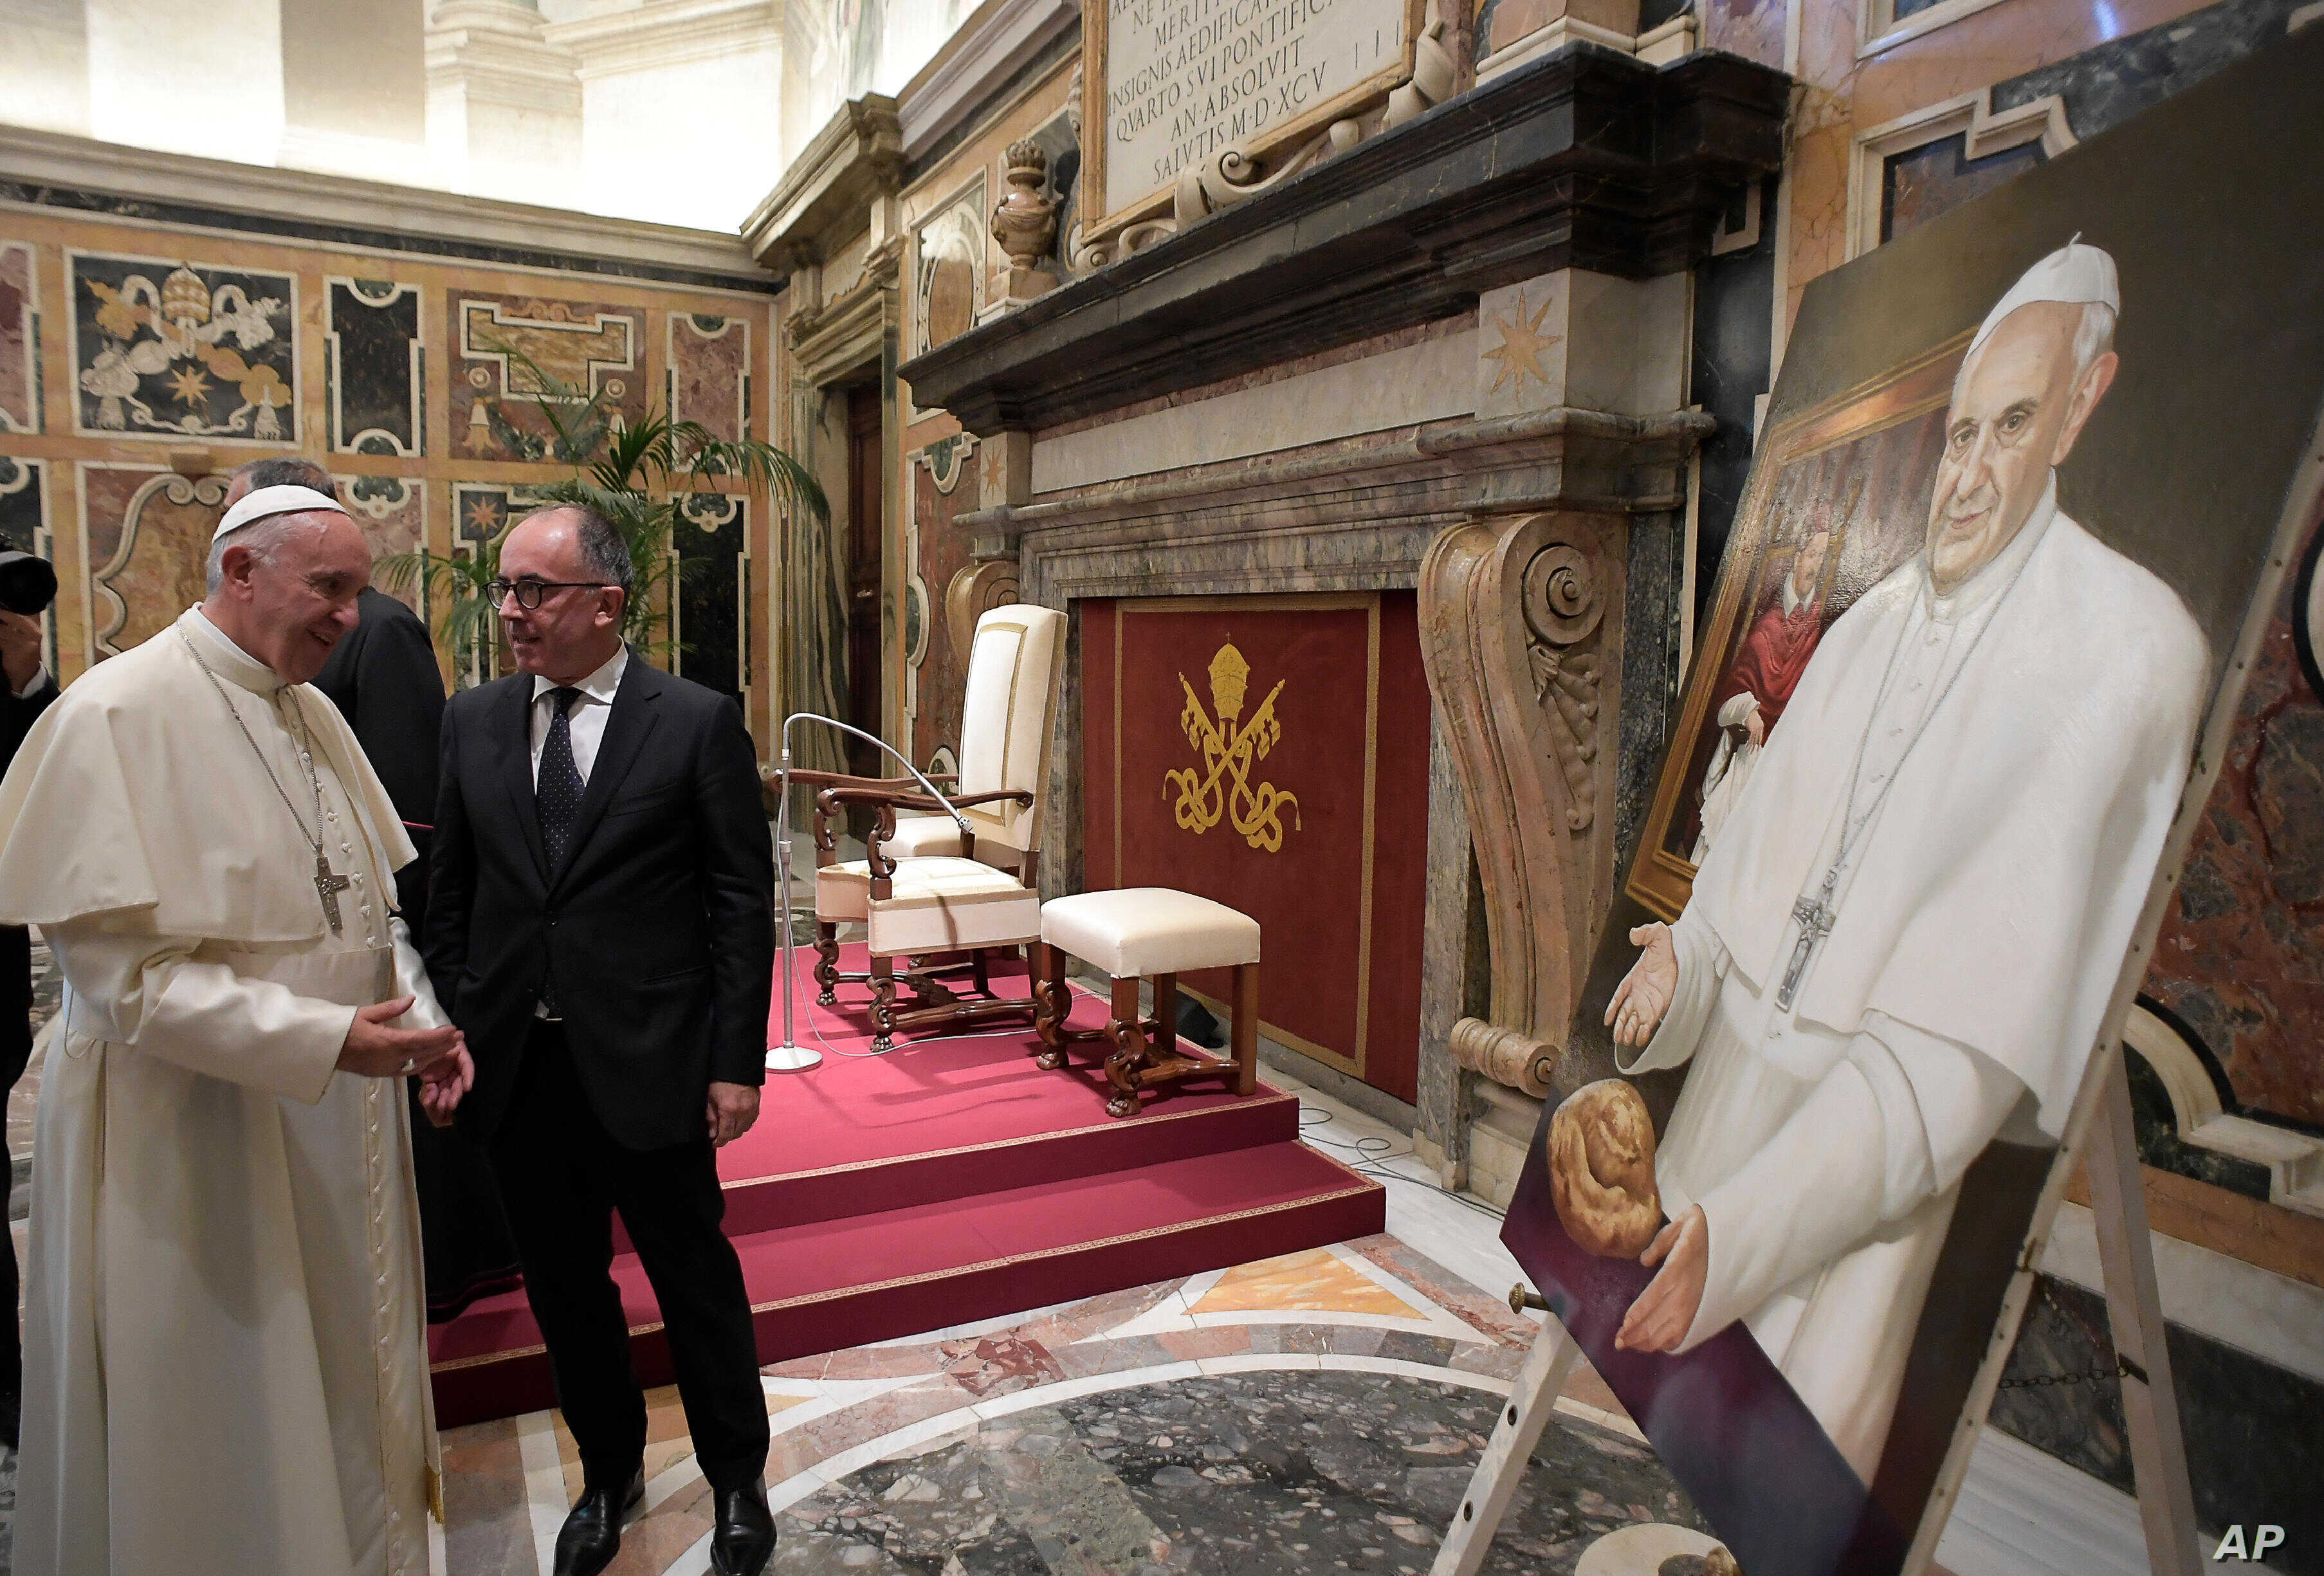 Vatican Pope Journalists: Pope Francis looks at a painting he received from the Italian Order of Journalists on the occasion of their audience, at the Vatican, Thursday, Sept. 22, 2016.